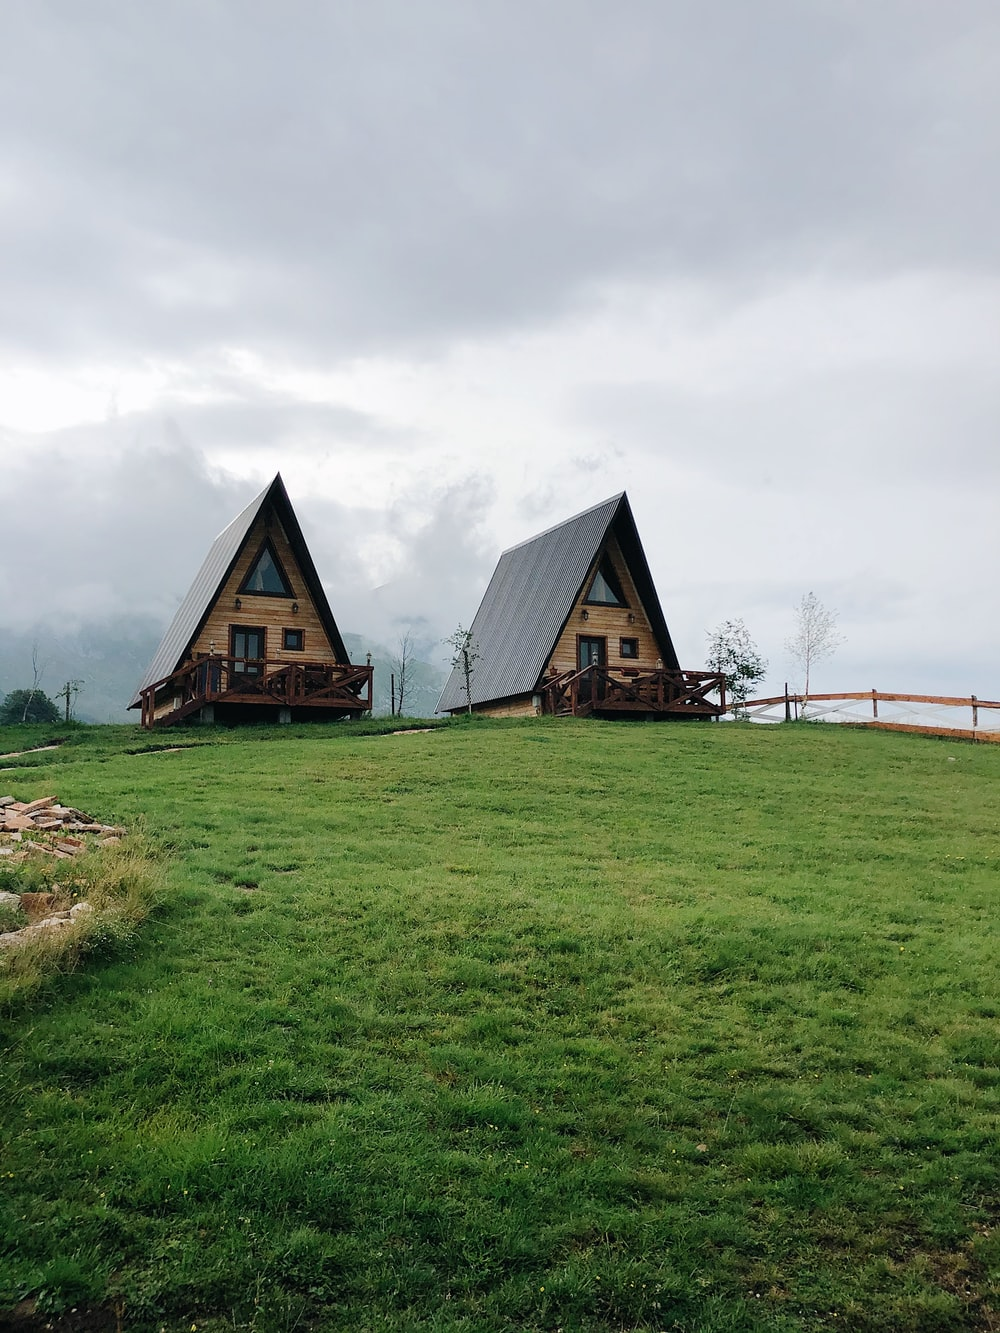 brown wooden house on green grass field under white cloudy sky during daytime